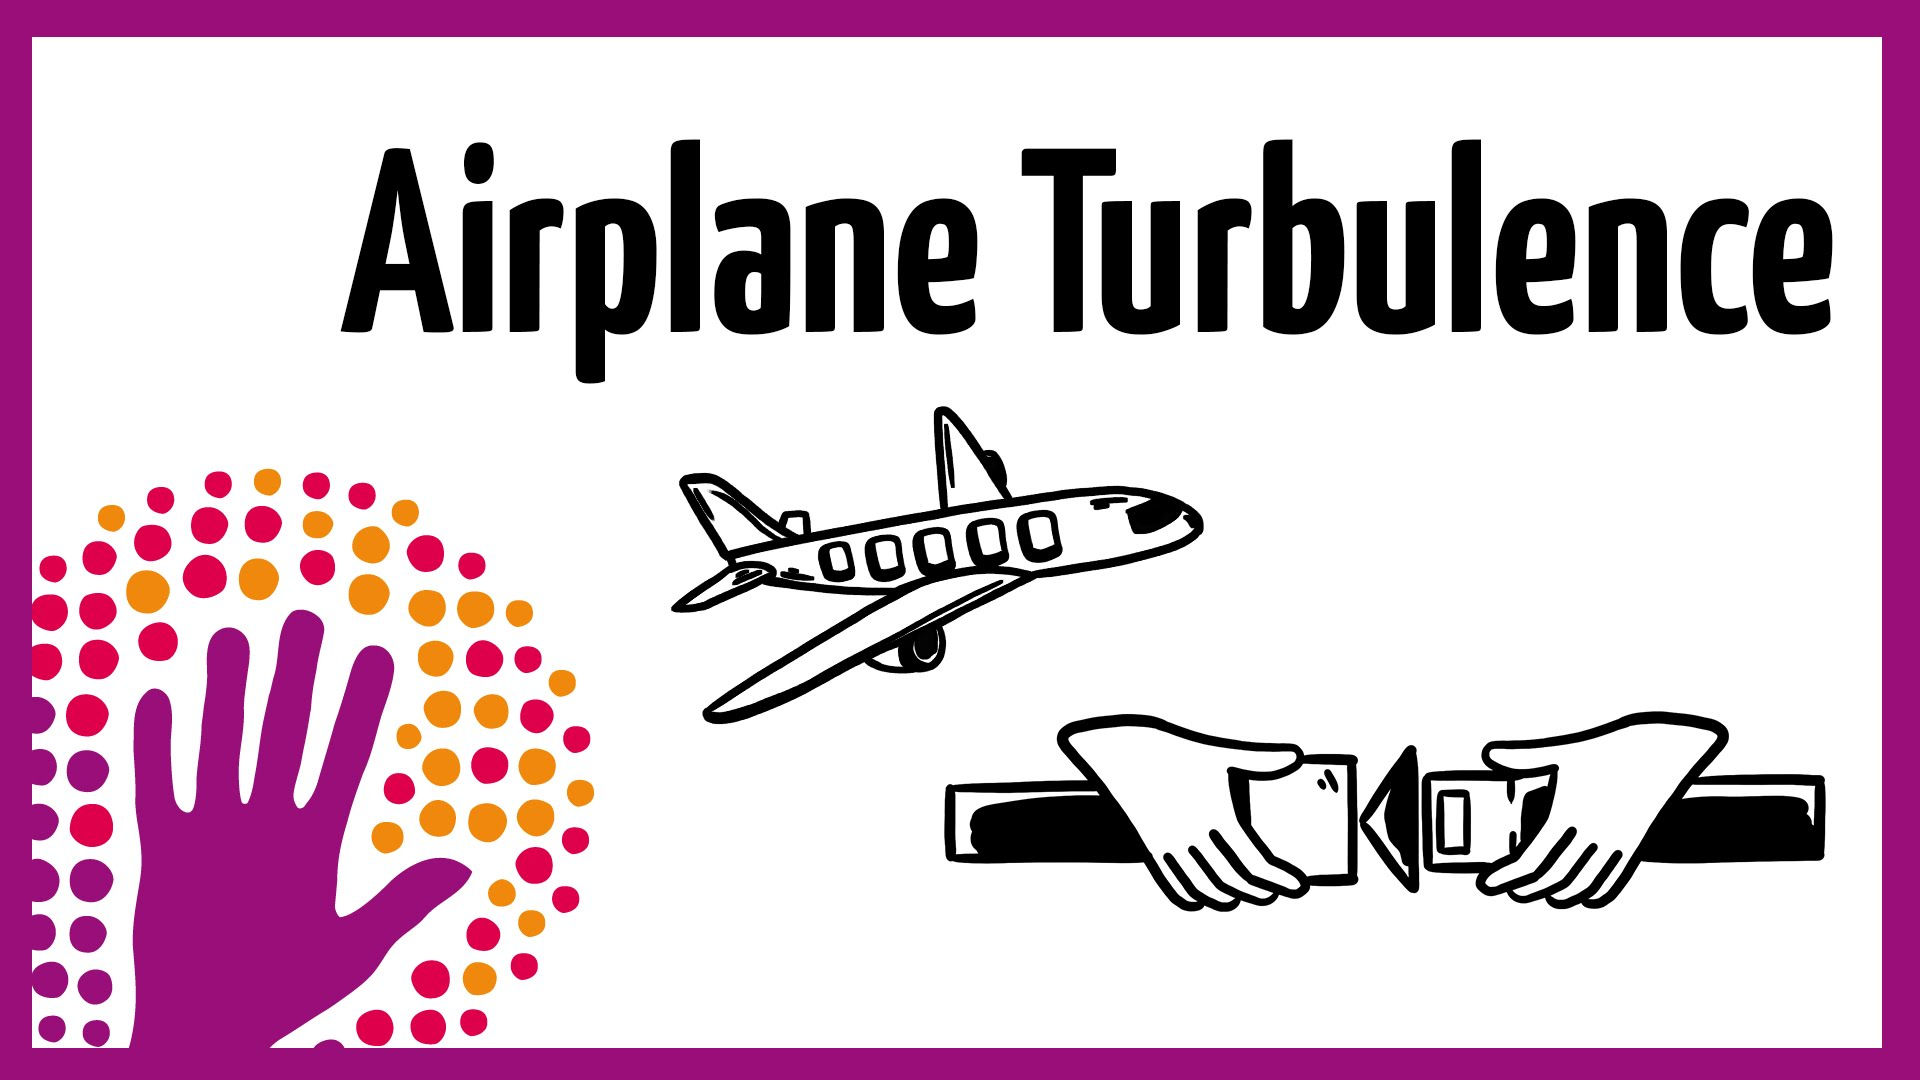 「【航空小知識】當飛機遇上亂流」- Airplane Turbulence—Explained in a Simple Way